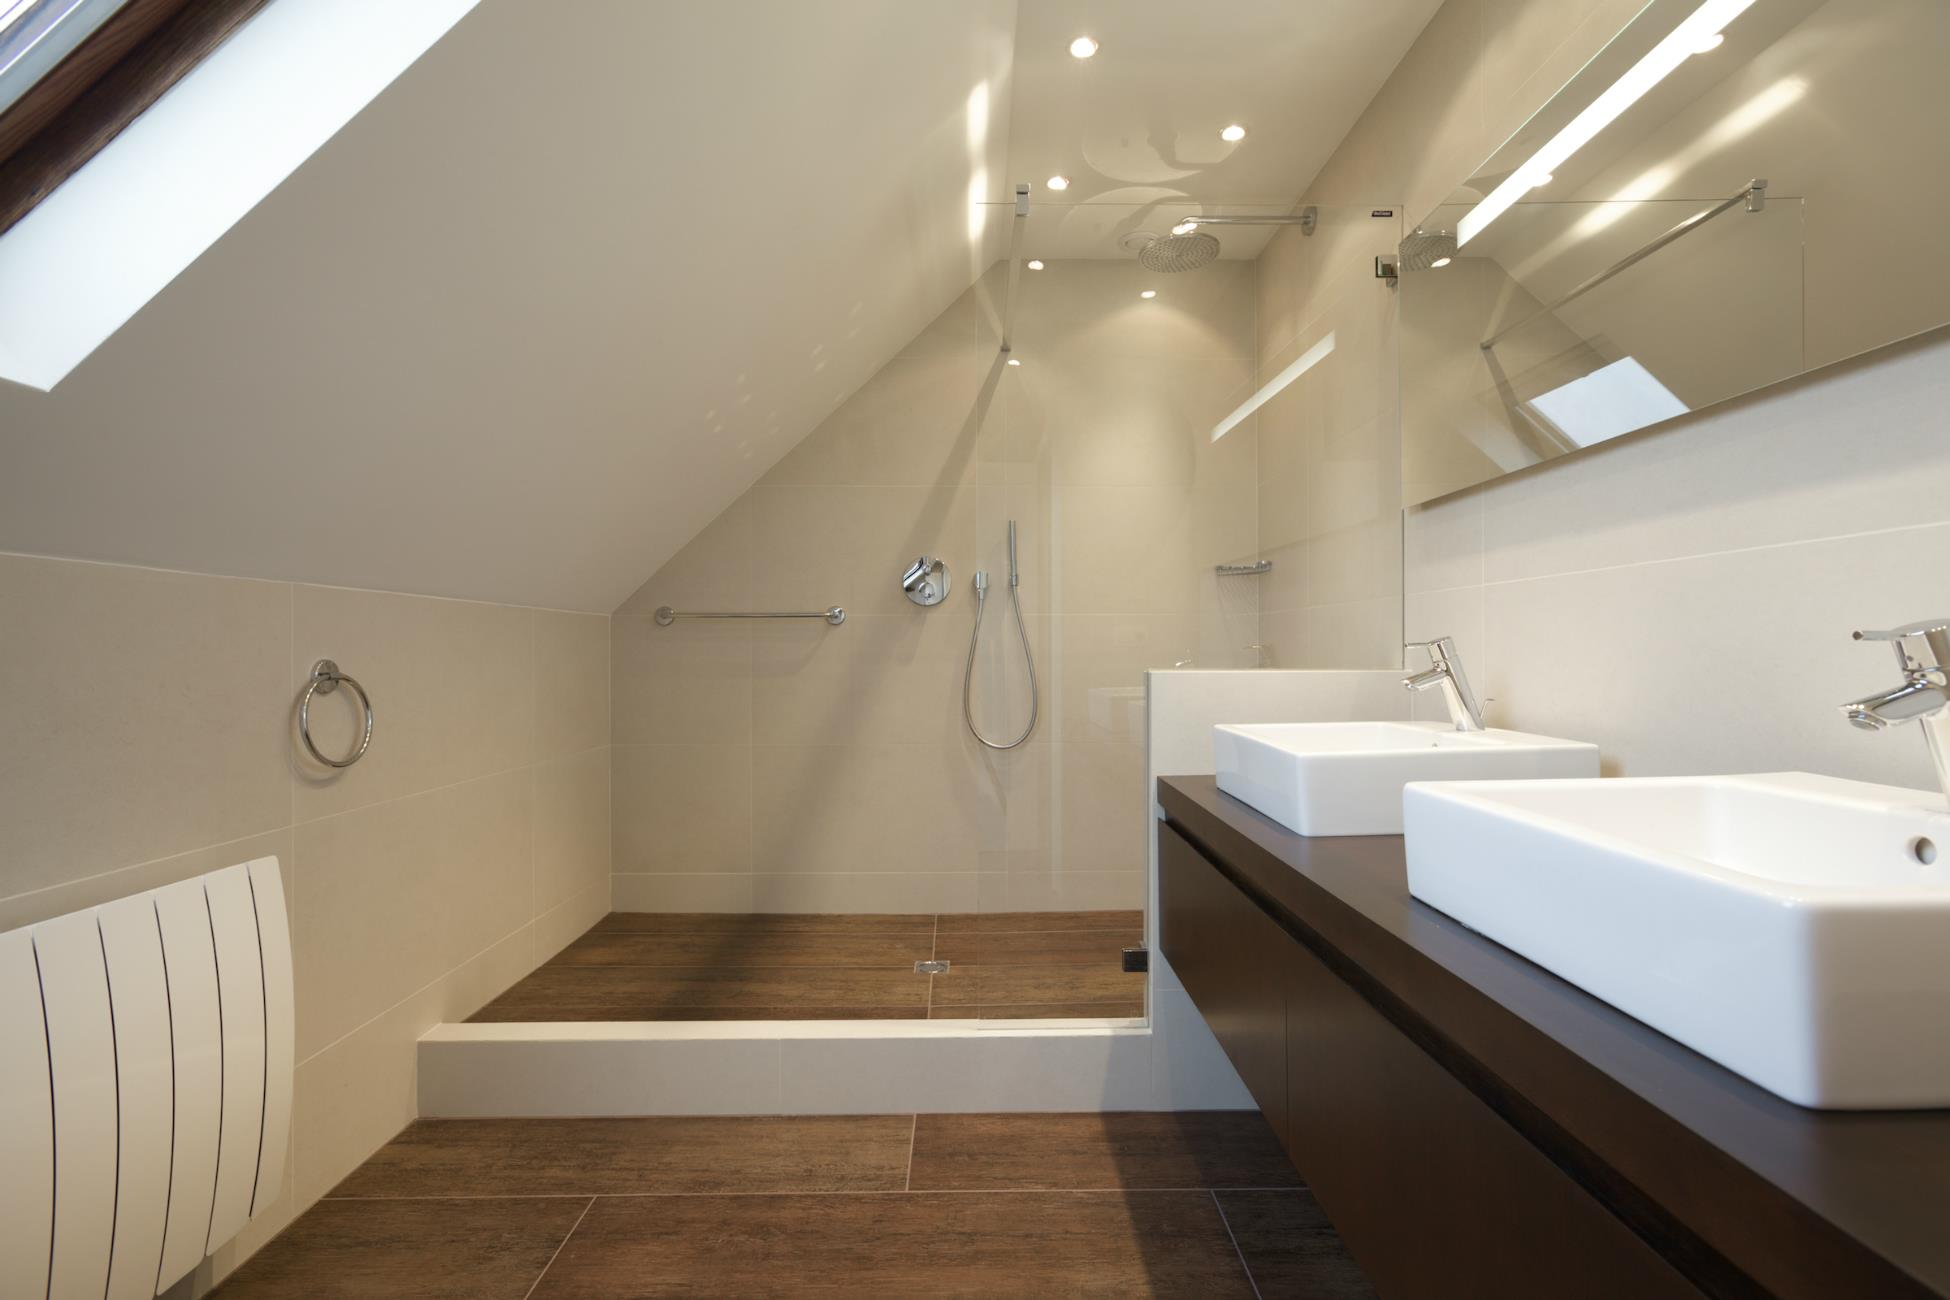 Architecte design et renovation salle de bain r alisations for Salle de bain architecte